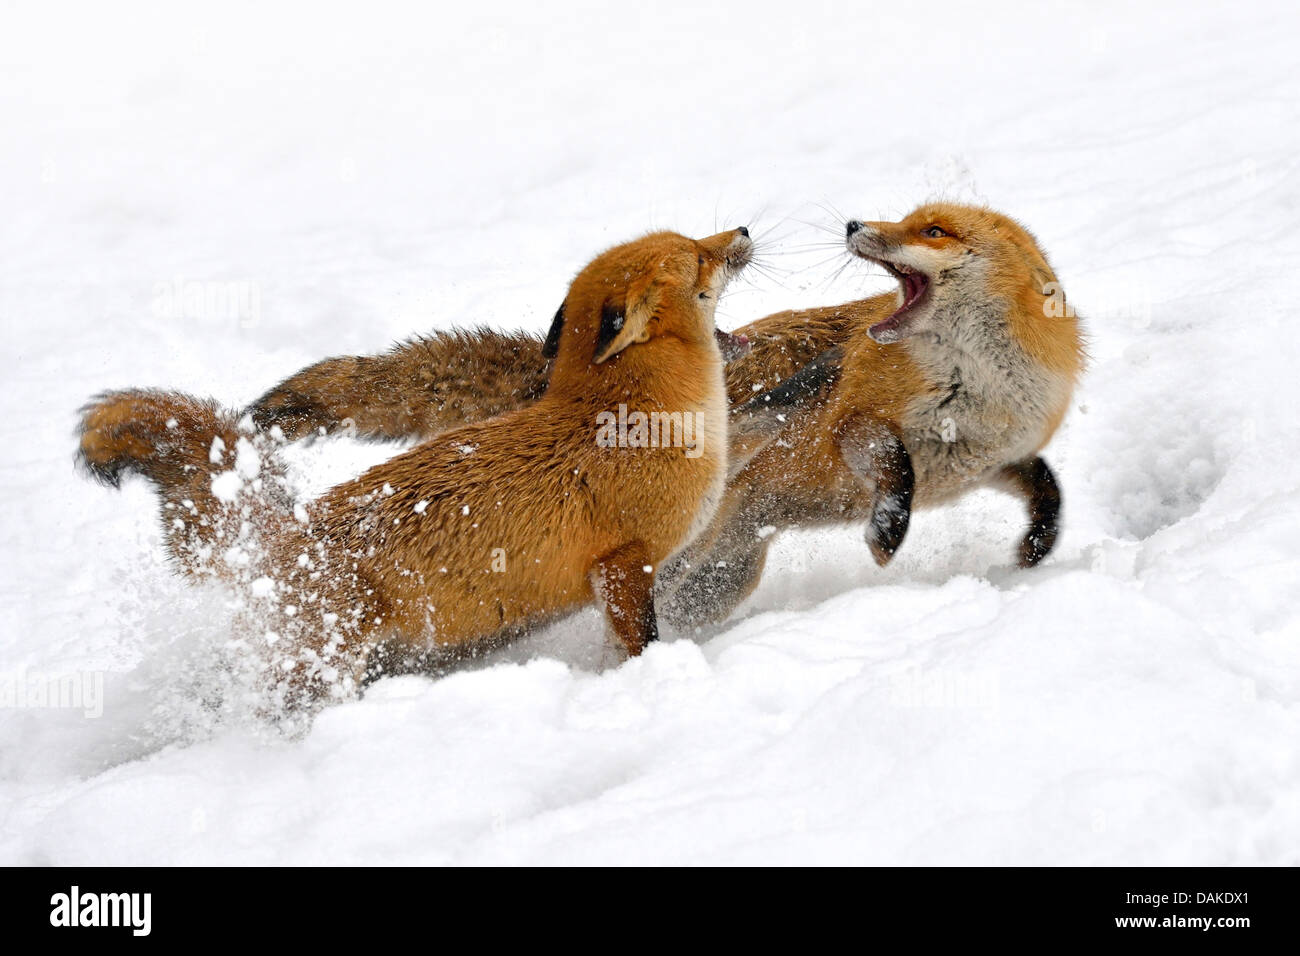 red fox (Vulpes vulpes), two foxes fighting in the snow, Germany - Stock Image